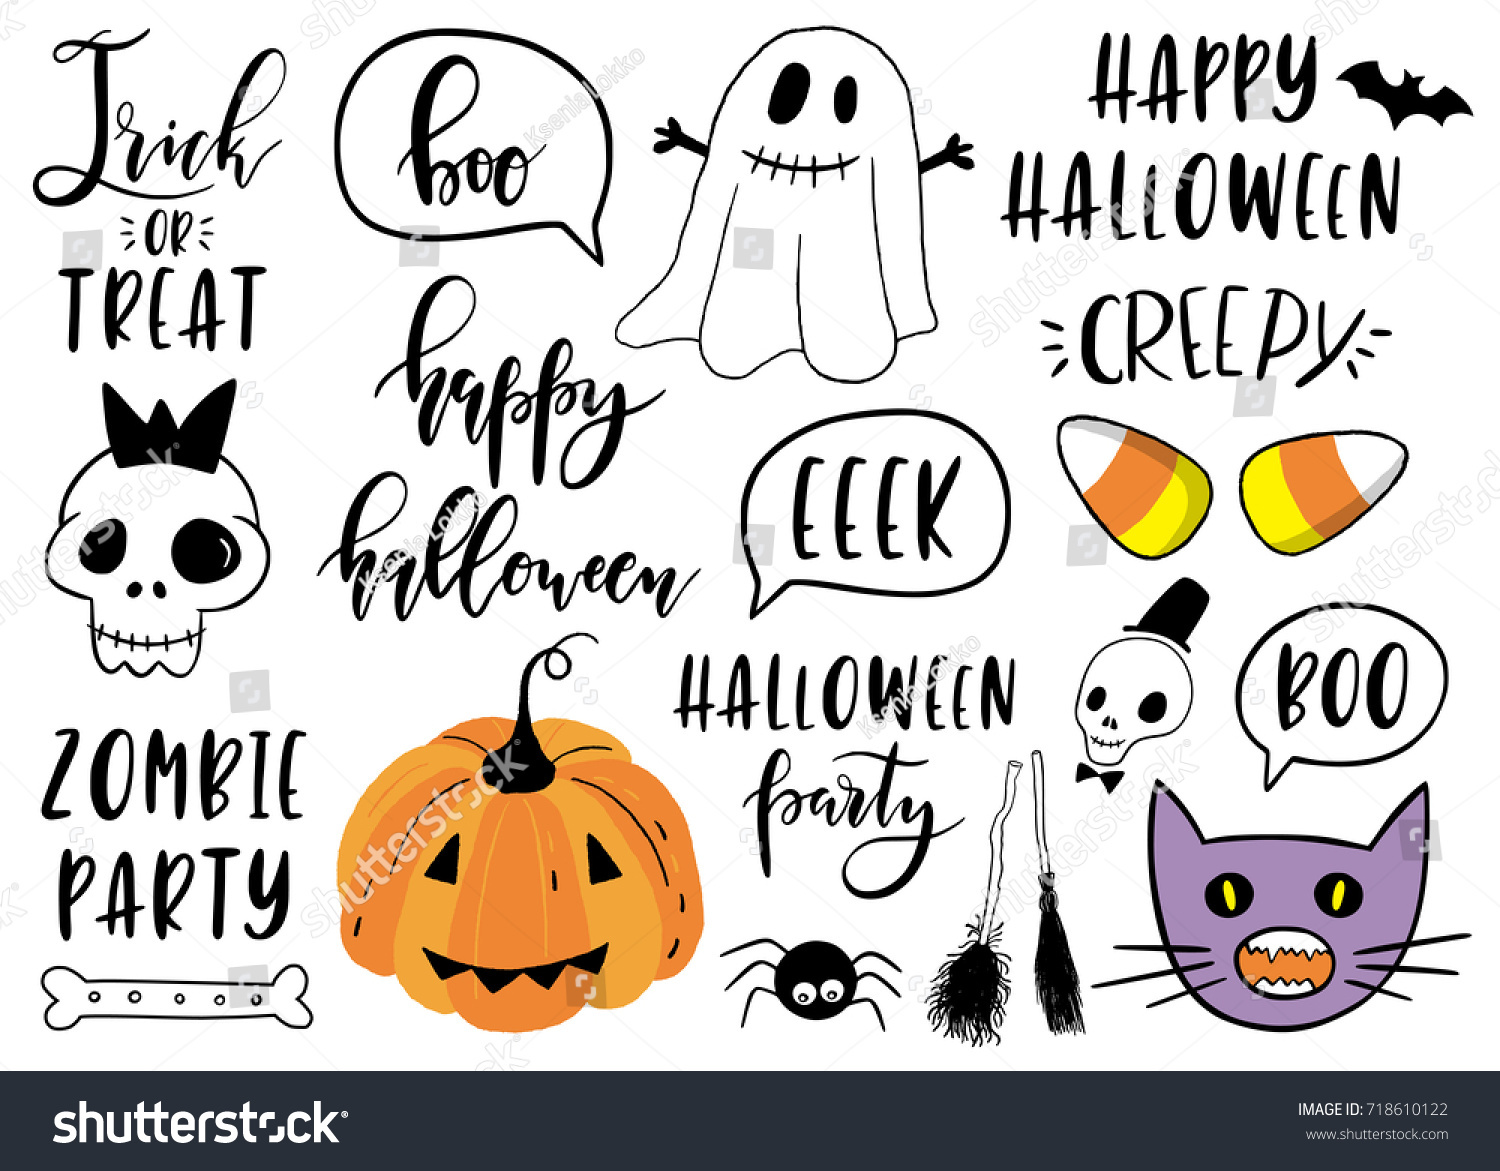 Halloween Lettering Set Pumpkin Skeleton Ghost Stock Vector ...